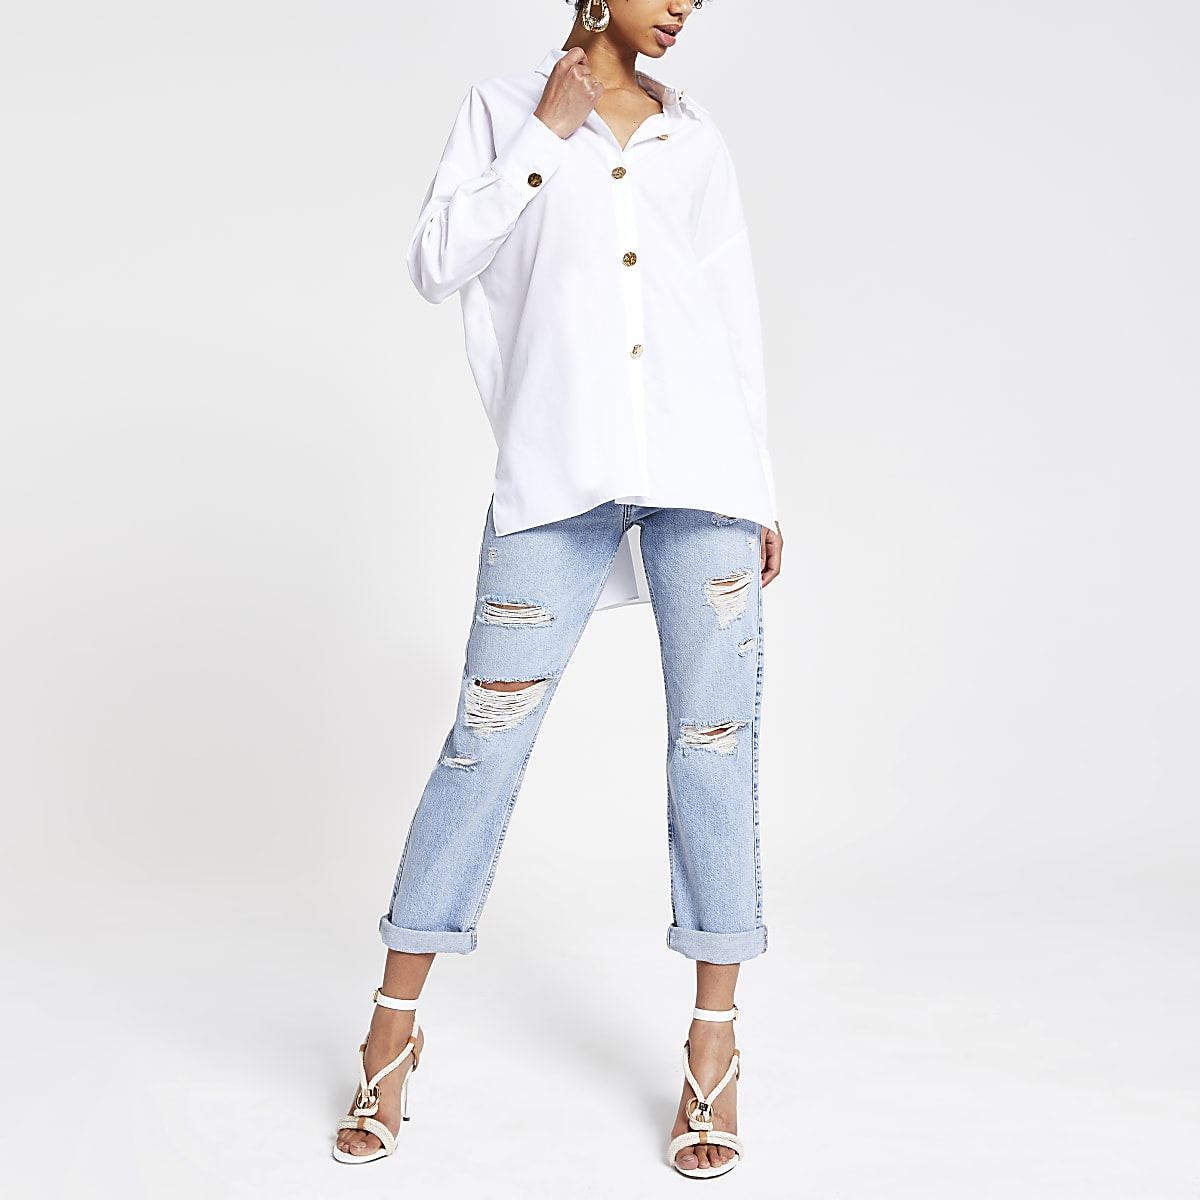 White long sleeve tunic shirt